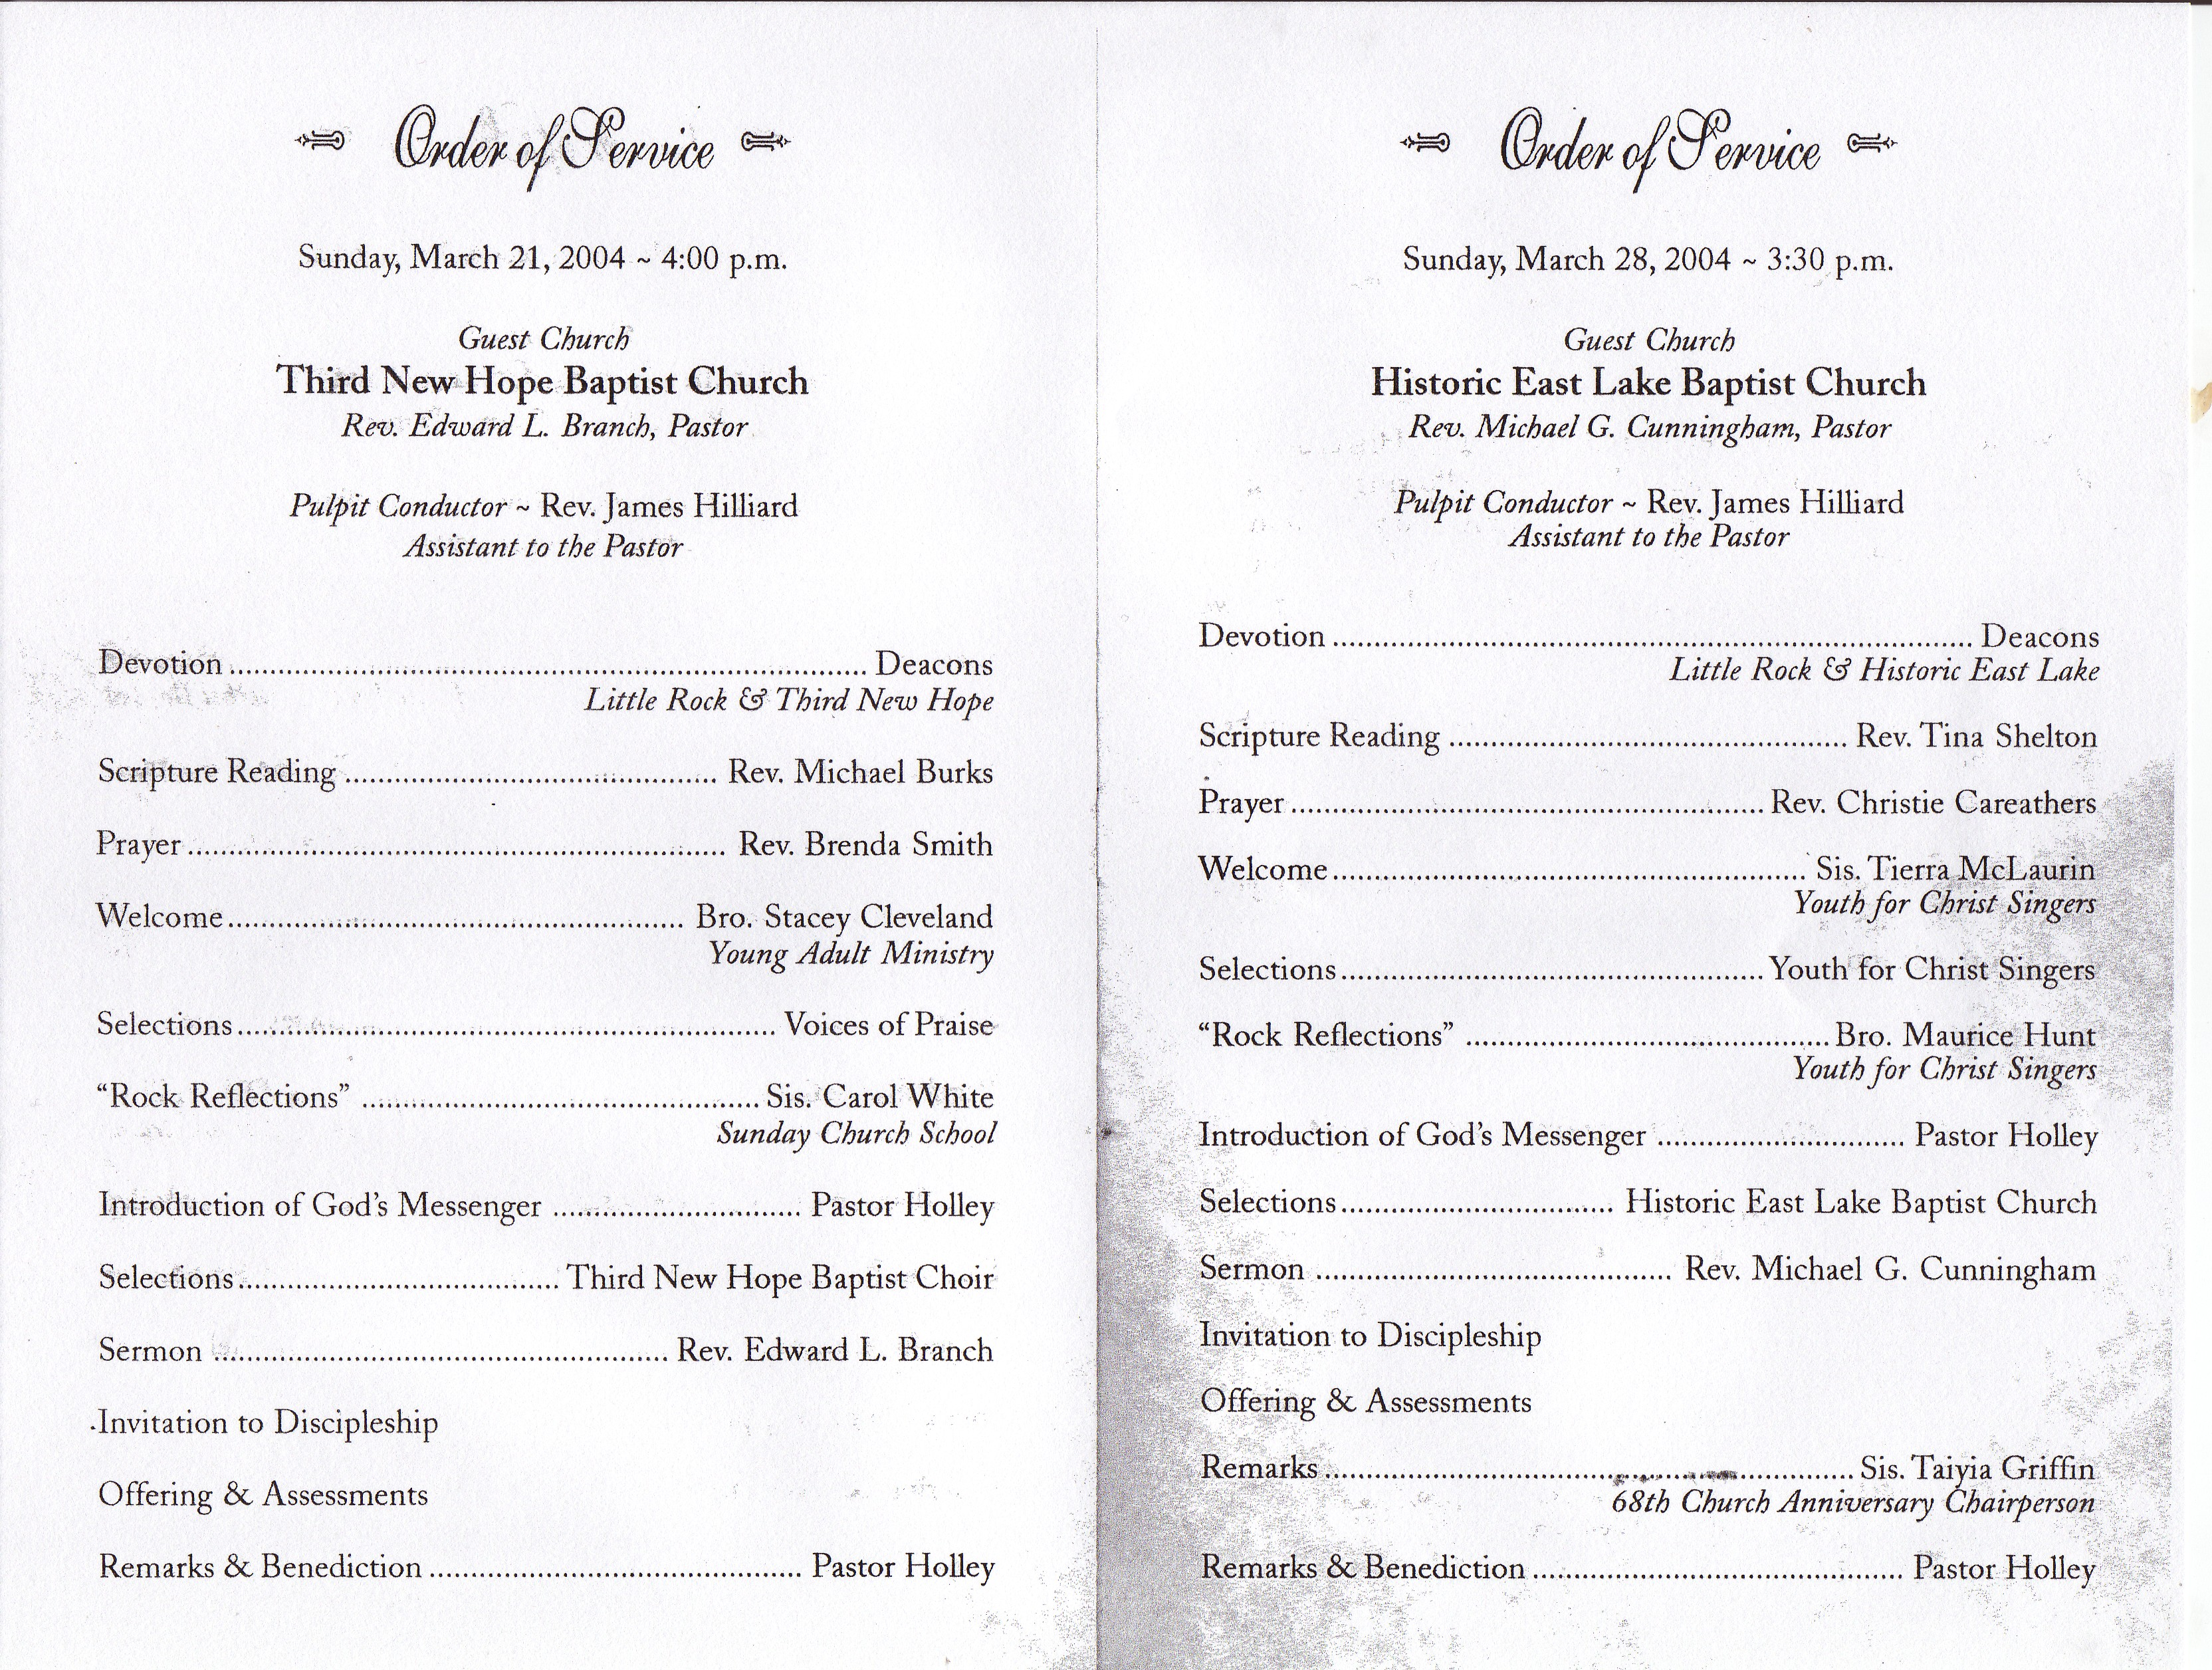 Church anniversary program template Index of /